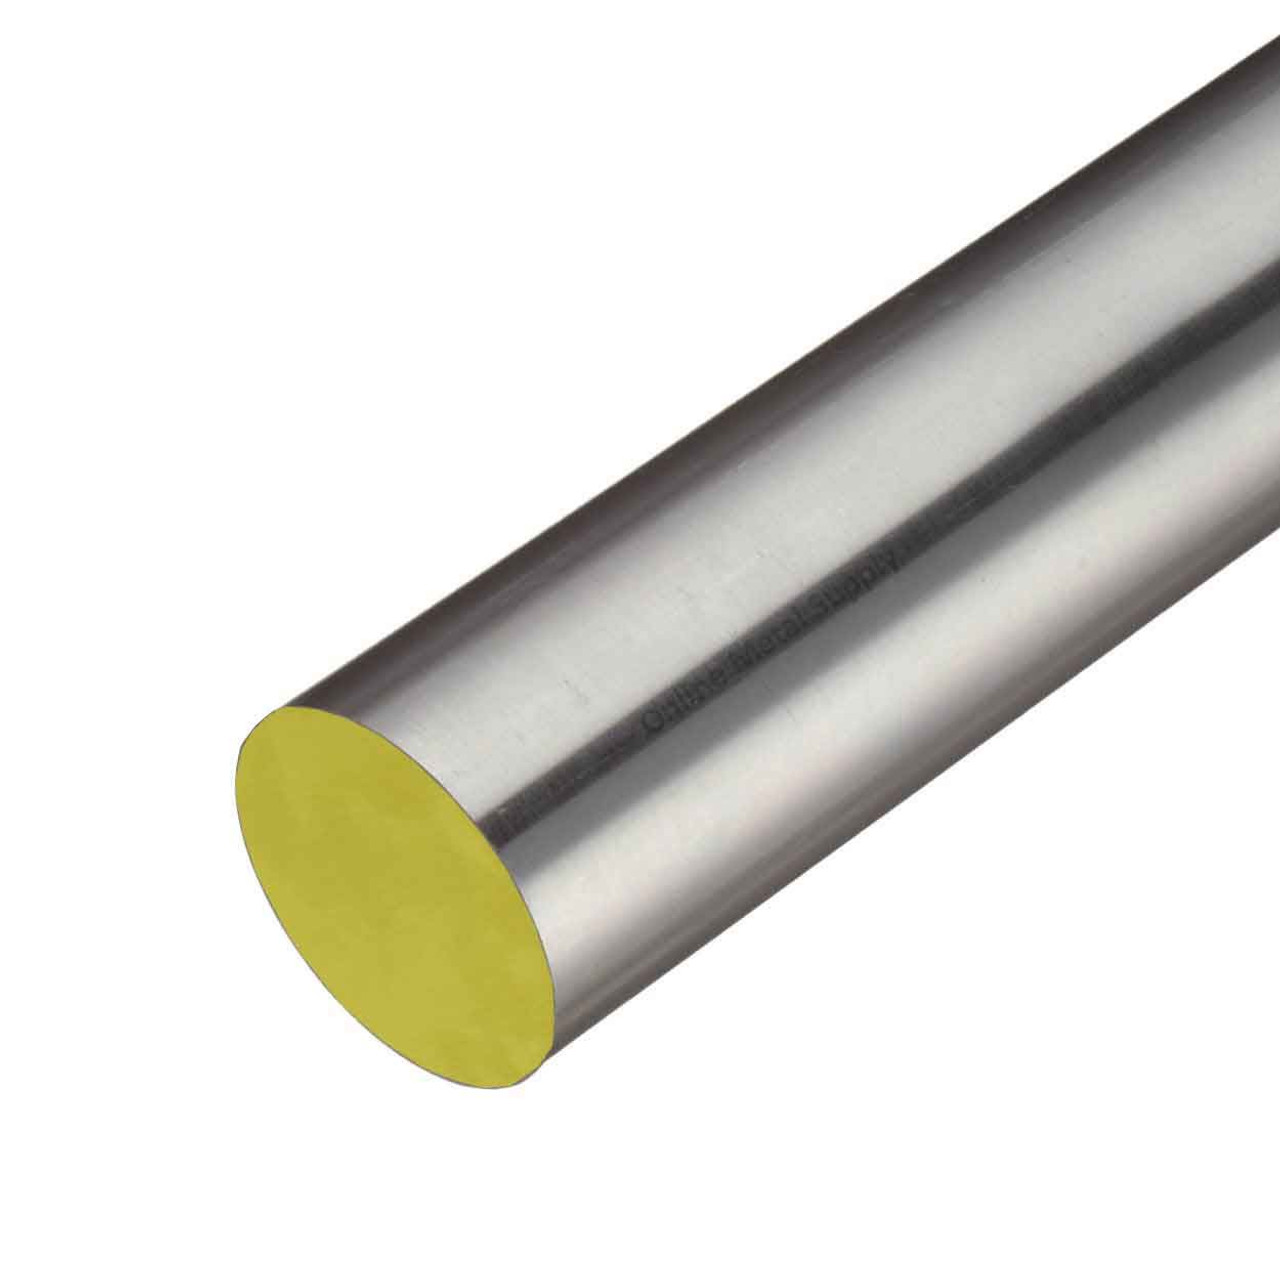 0.669 (17mm) x 36 inches, 316 TGP Stainless Steel Round Rod